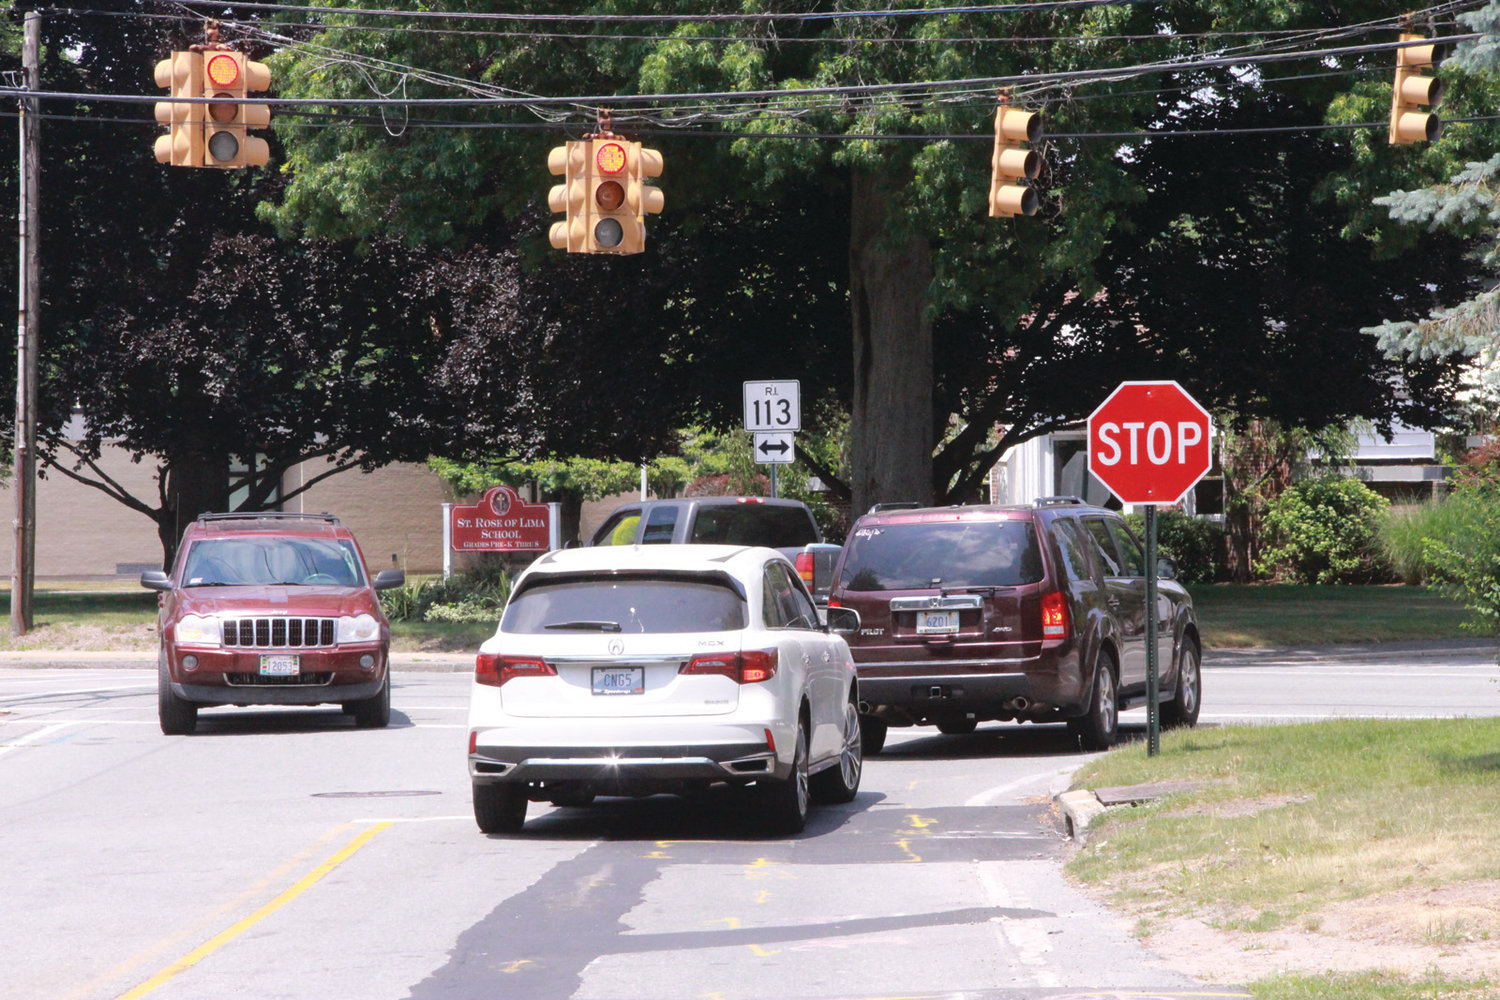 LINING UP:  Vehicles on Buttonwoods Avenue wait for a break in traffic on Main Avenue now that the traffic light is not functioning and been placed on the flashing mode. The intersection has been the site of two accidents since the light was deactivated five weeks ago.